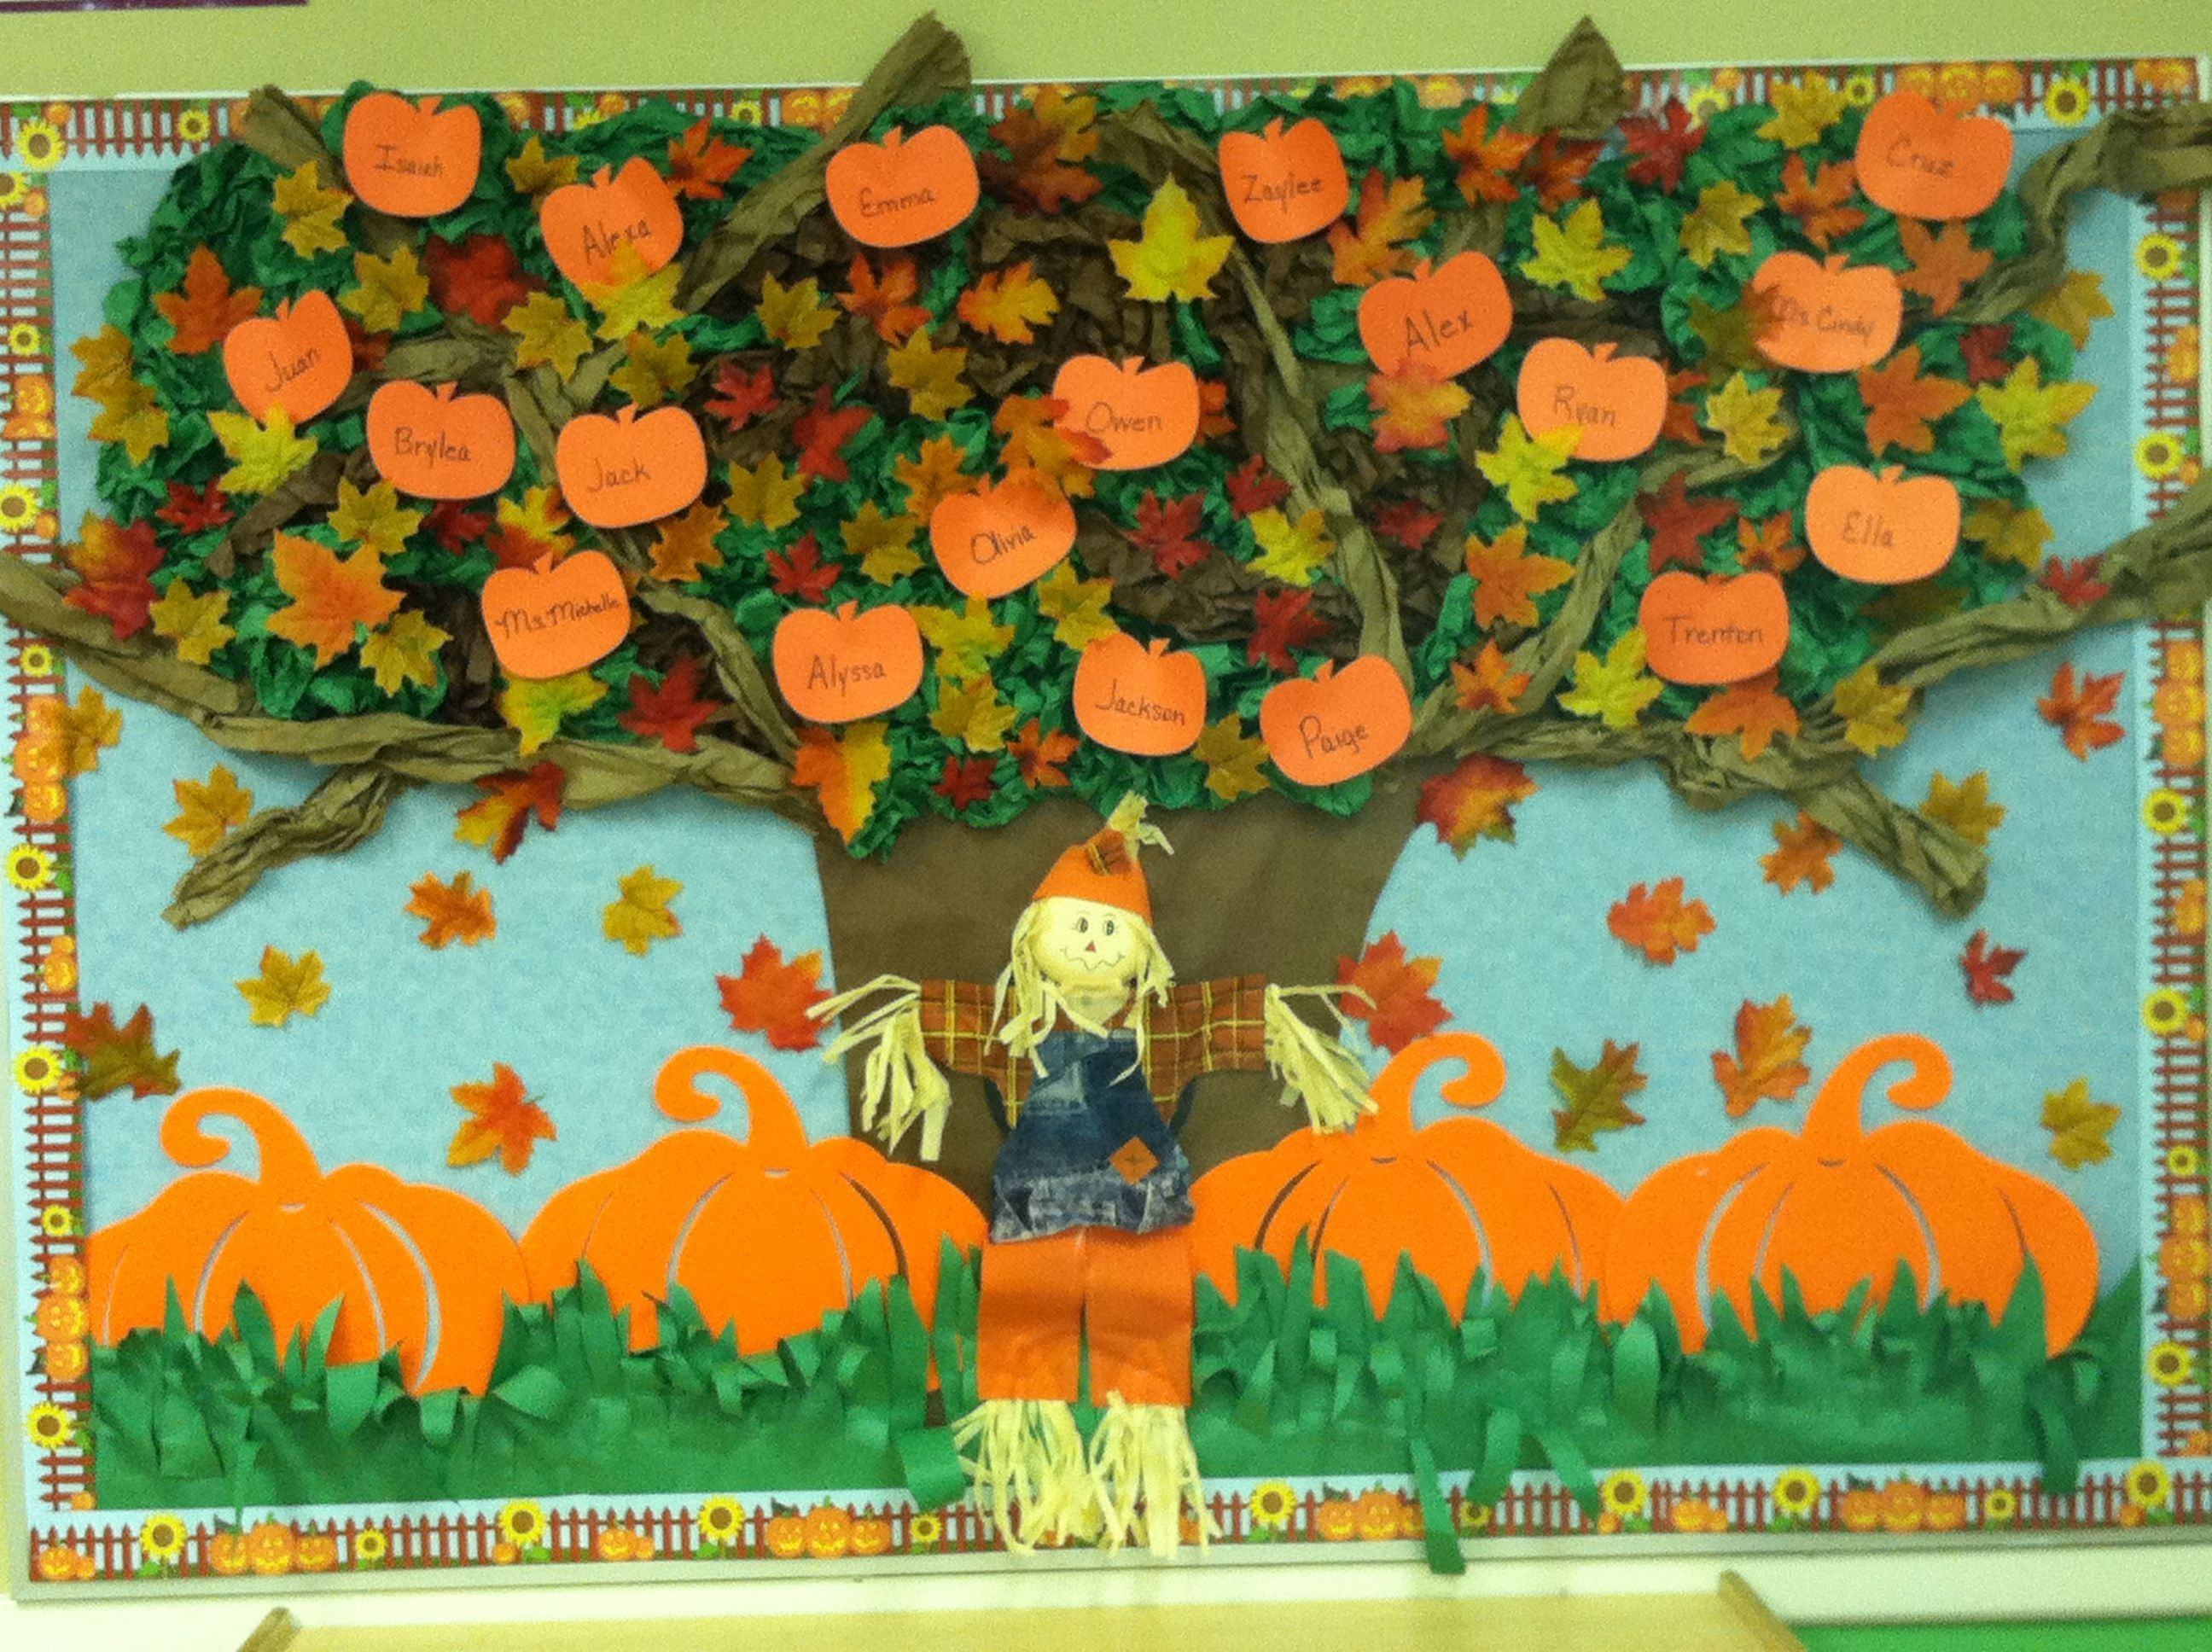 Fall Bulletin Board, 2013 #fallbulletinboards Fall Bulletin Board, 2013 #fallbulletinboards Fall Bulletin Board, 2013 #fallbulletinboards Fall Bulletin Board, 2013 #octoberbulletinboards